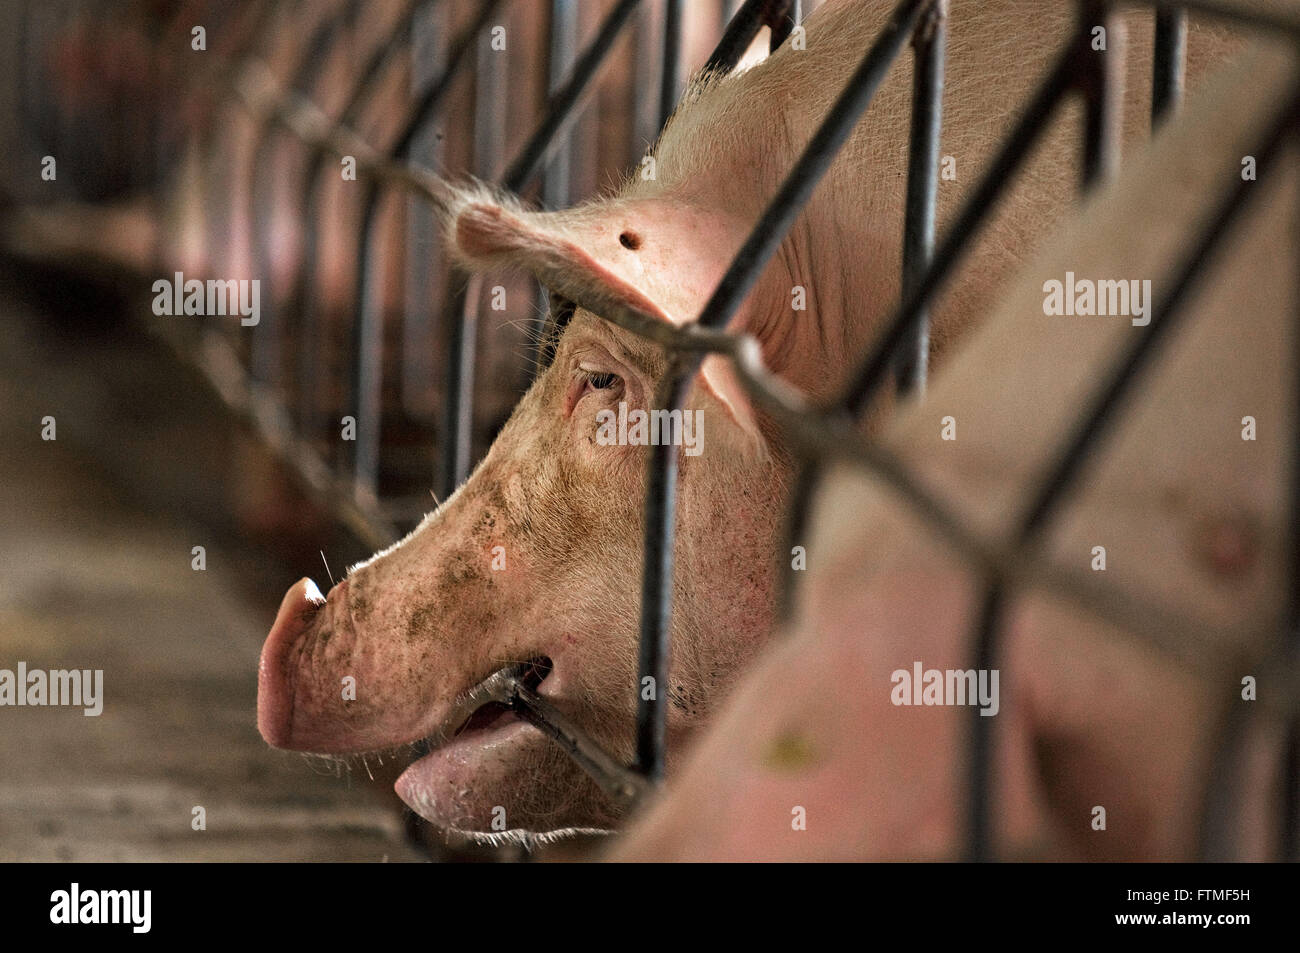 Criacaode pigs in confinement - Stock Image